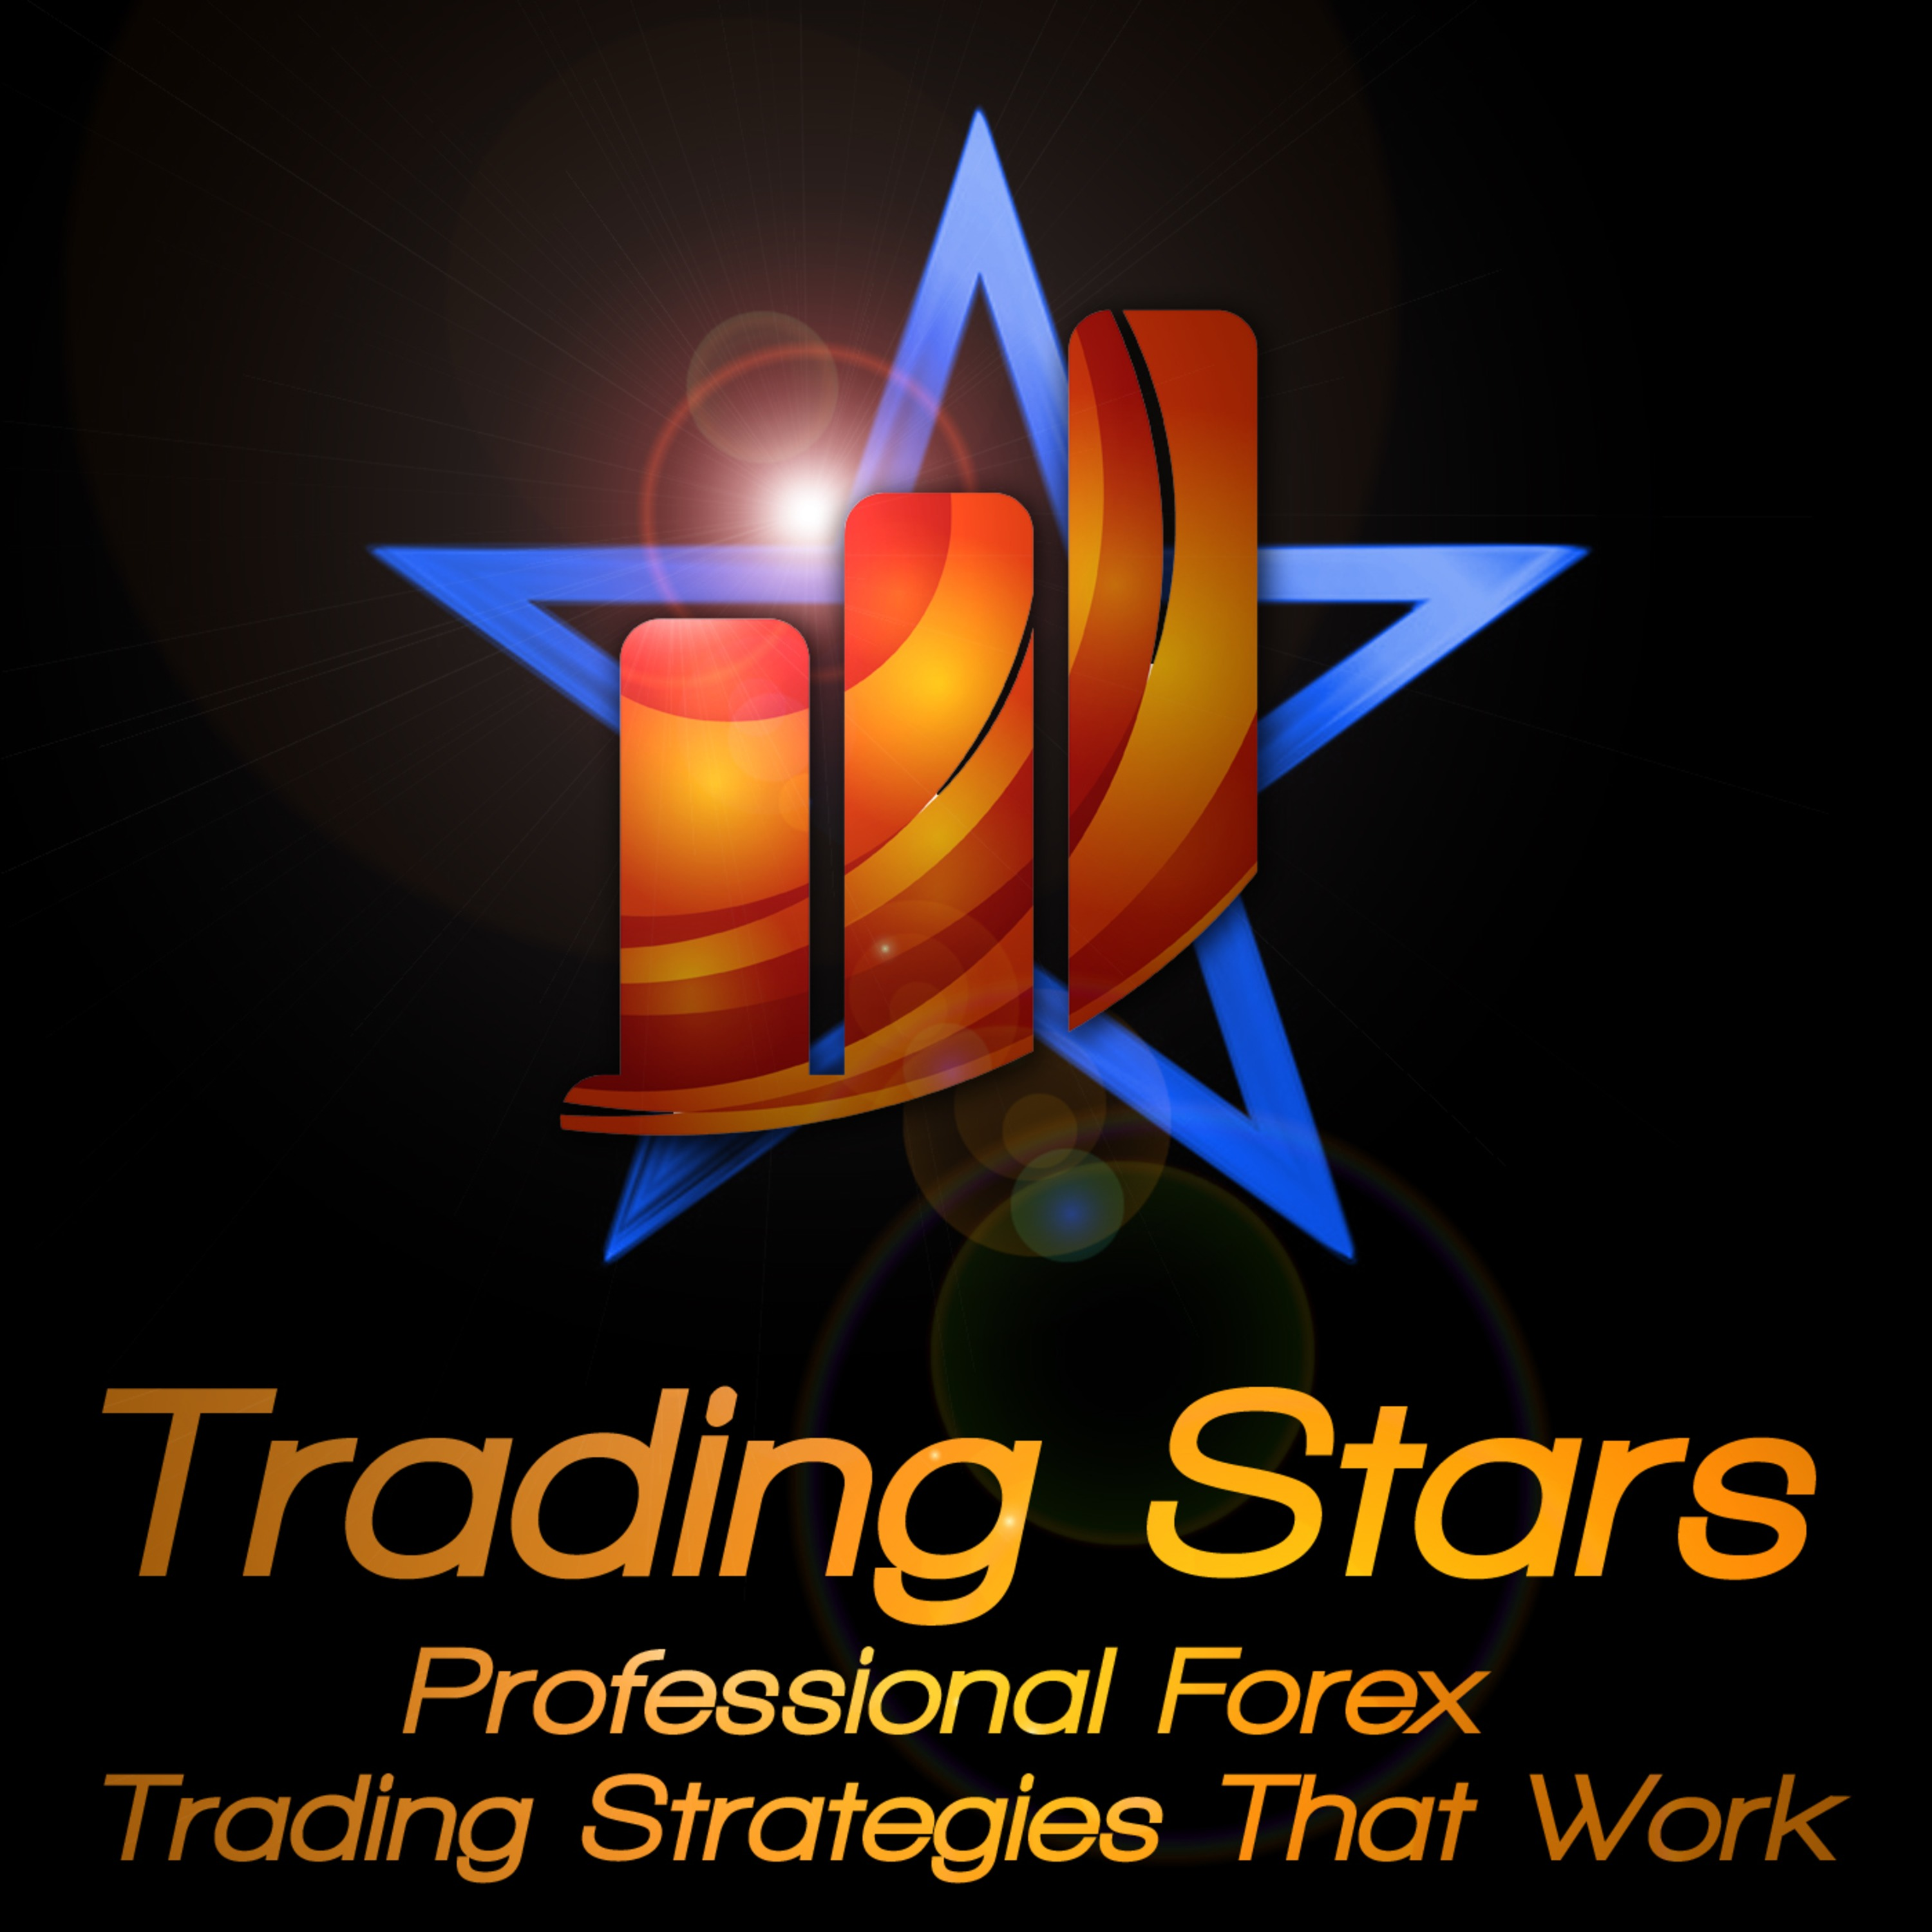 Trading Mastermind: Professional Forex Trading Strategies